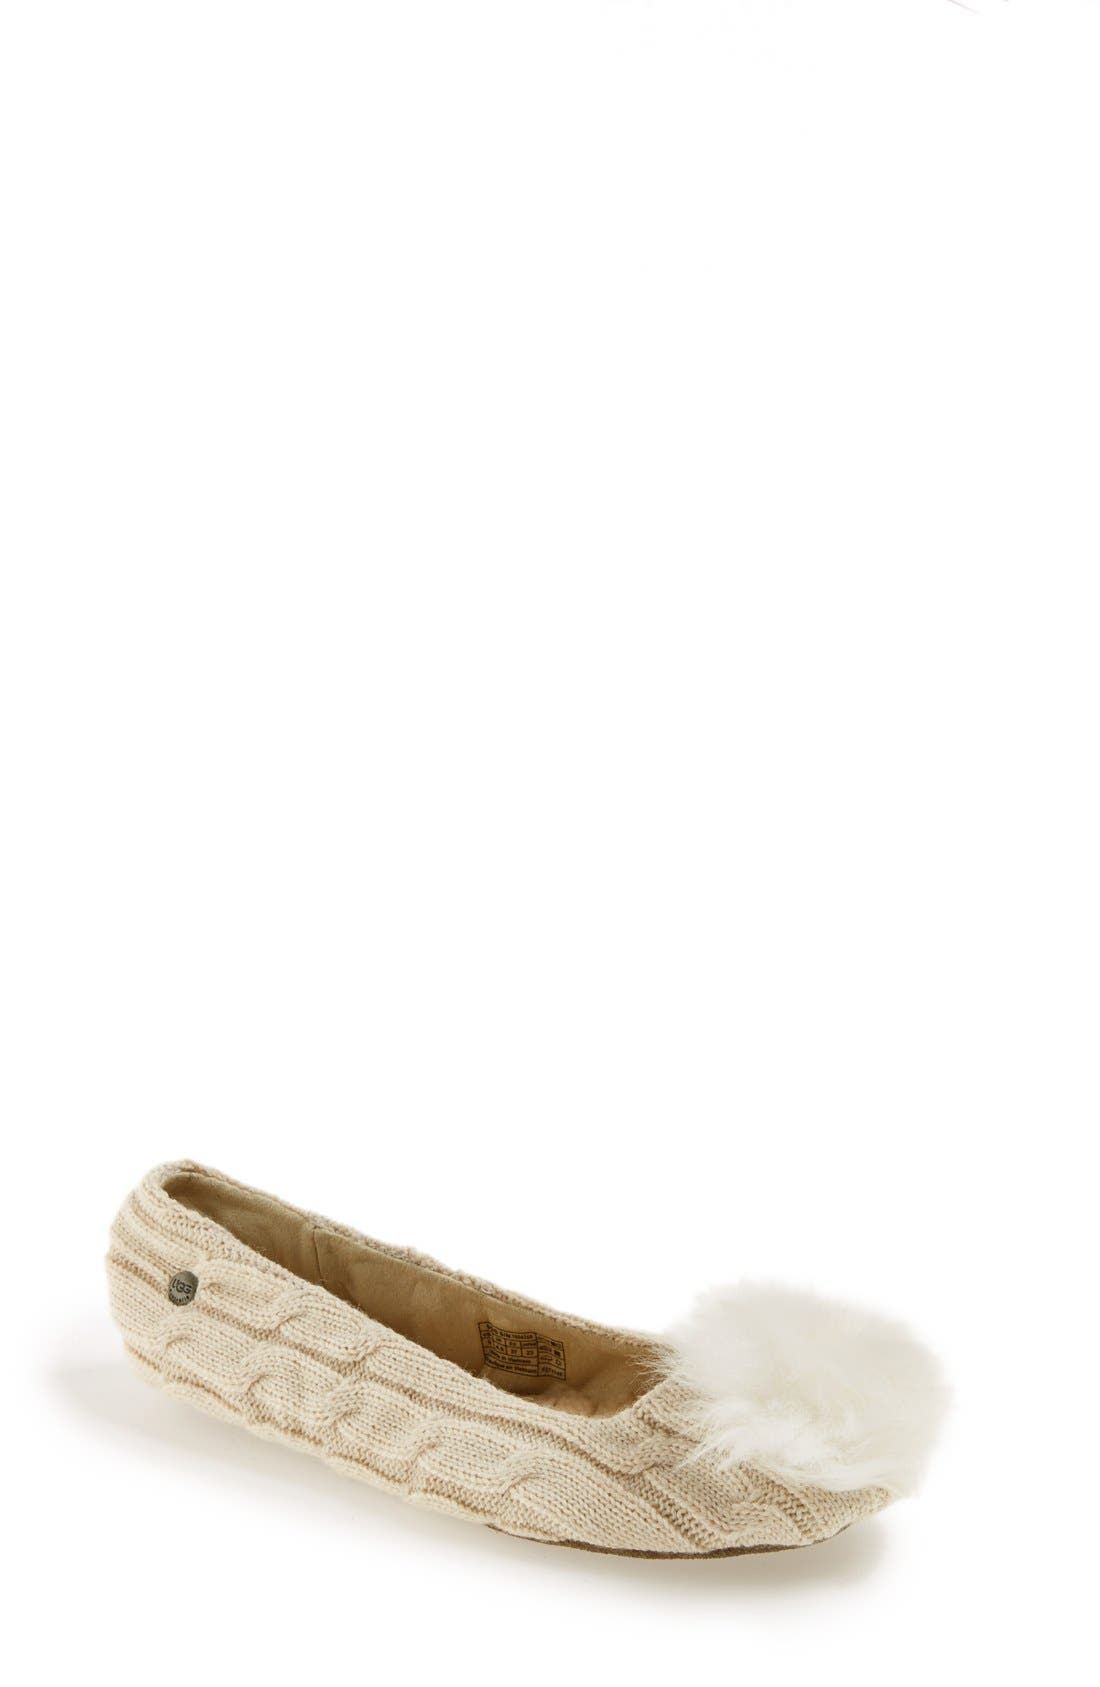 Alternate Image 1 Selected - UGG® Australia 'Andi' Slipper (Women)